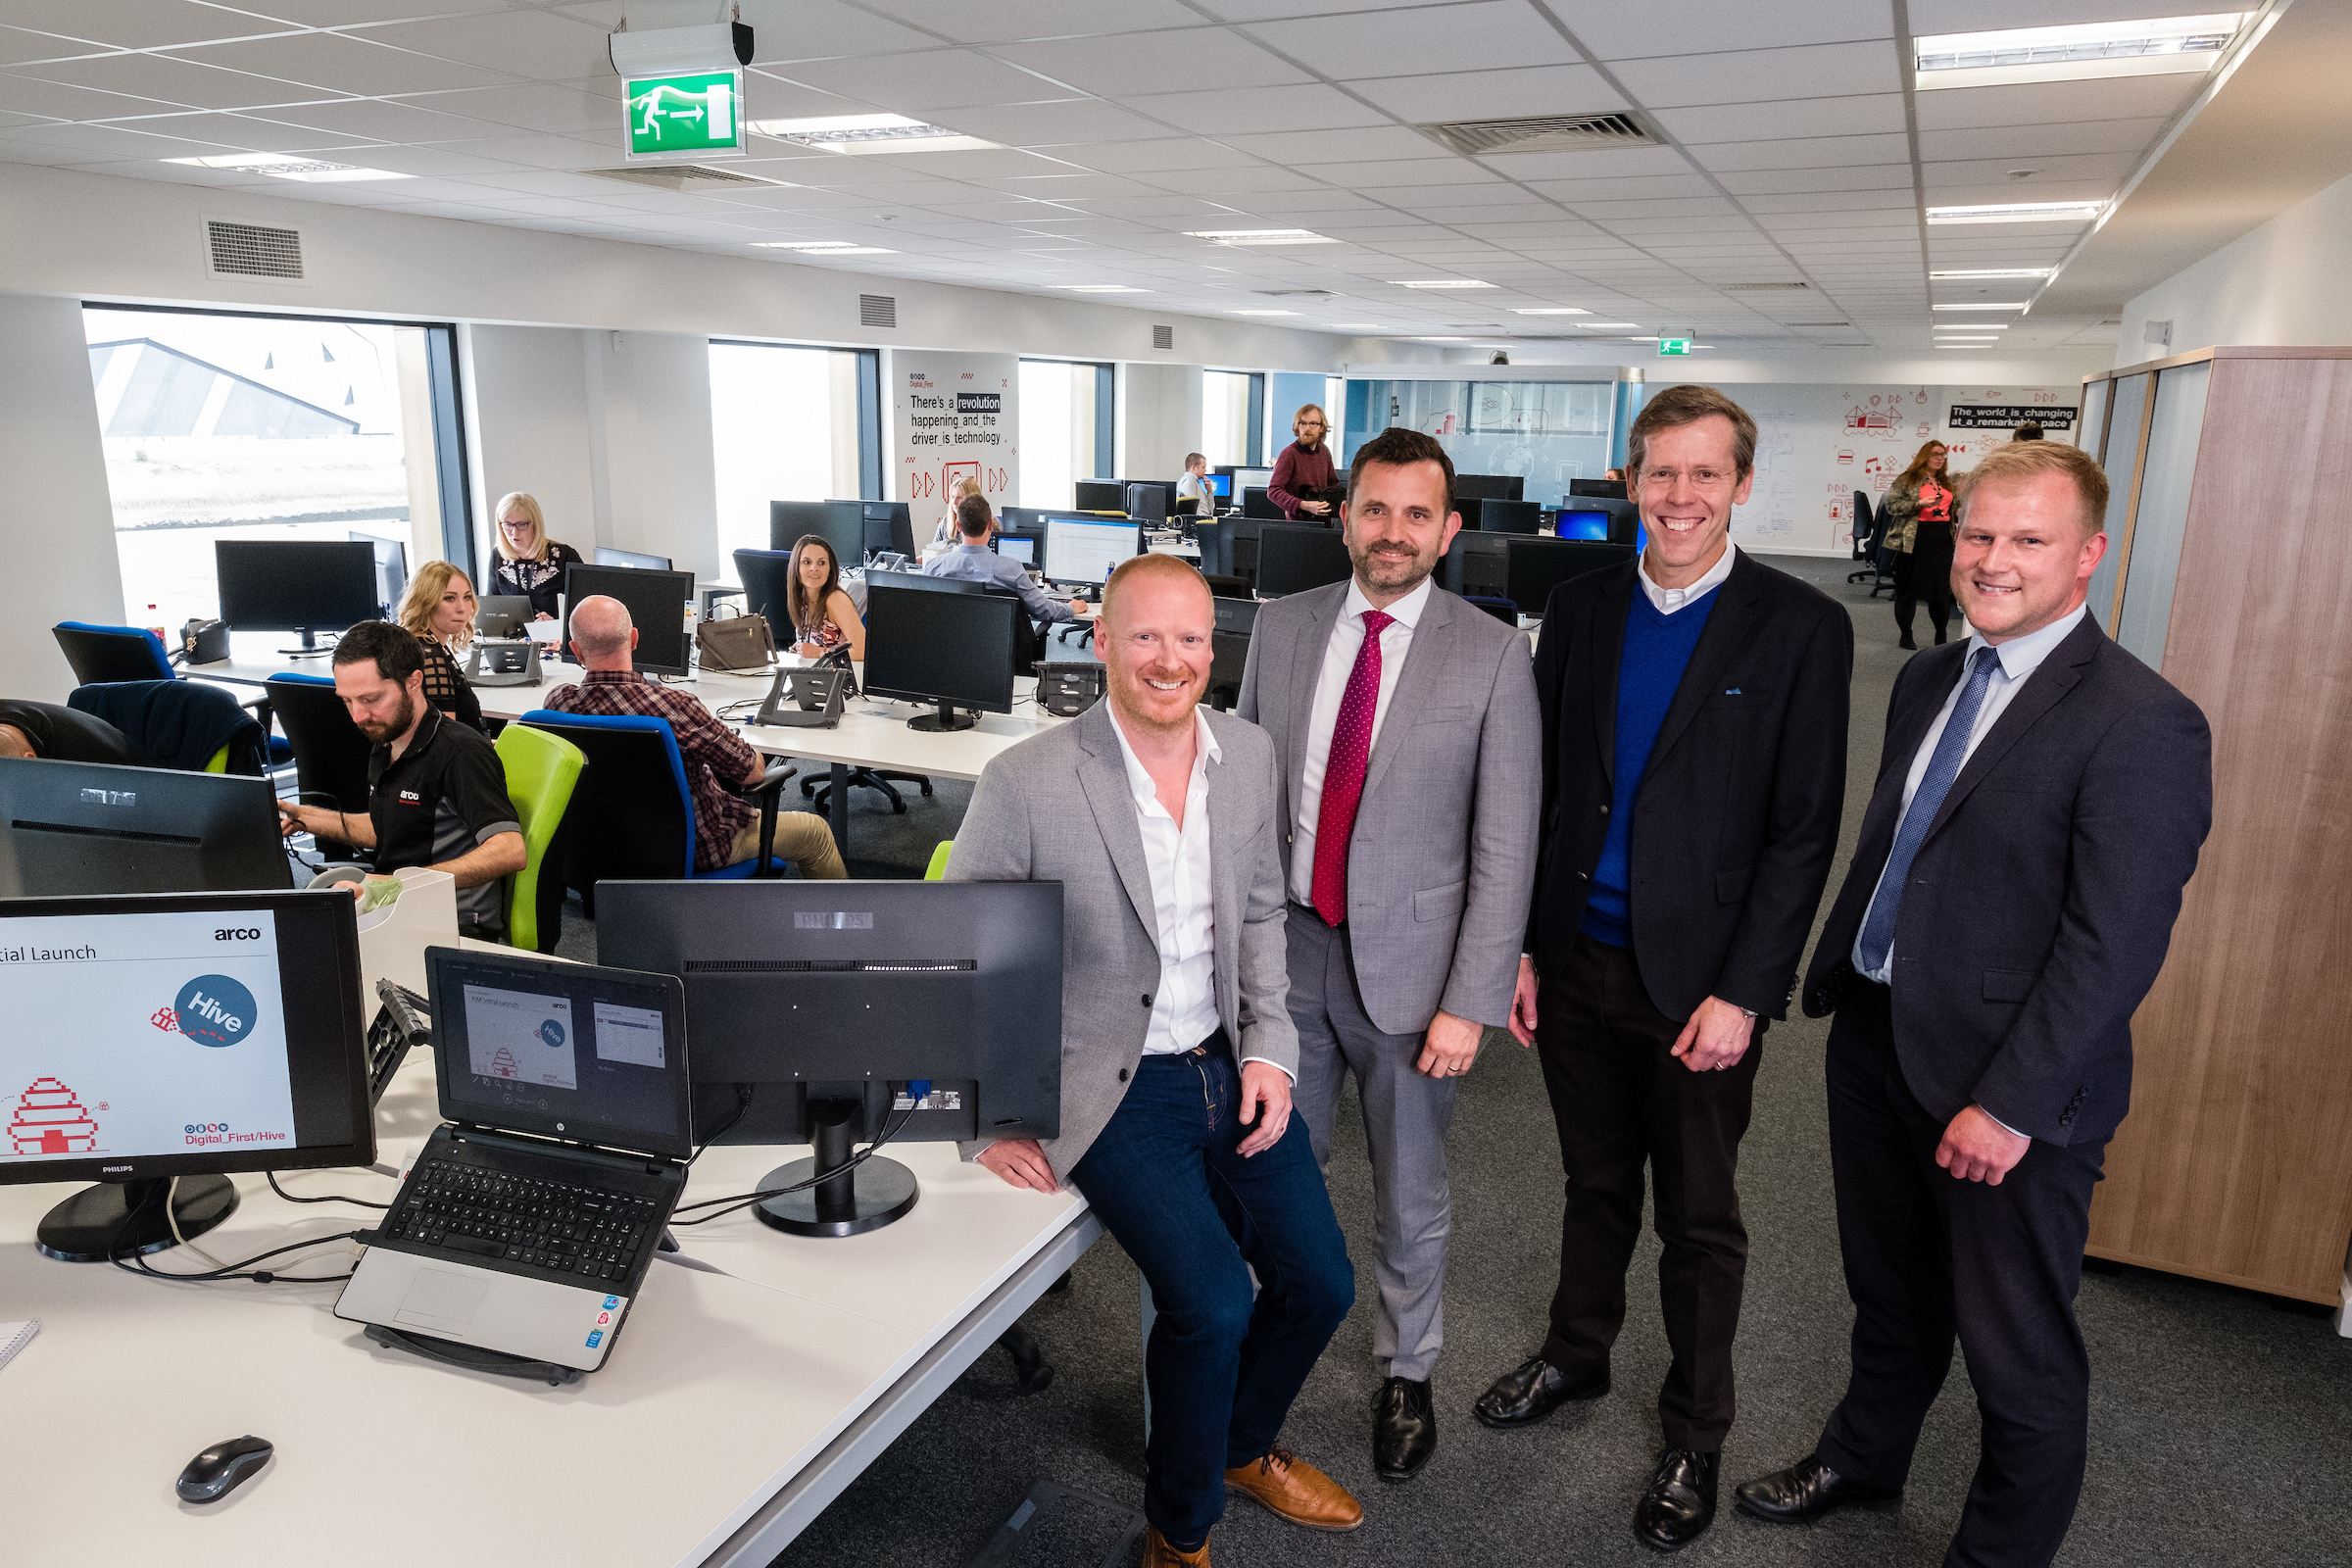 From left, Arco Digital Director Richard Martin, Wykeland Group Managing Director Dominic Gibbons, Arco Chief Executive Neil Jowsey and Wykeland Asset Manager John Gouldthorp in the new home for Arco's digital team at Wykeland's @TheDock development.